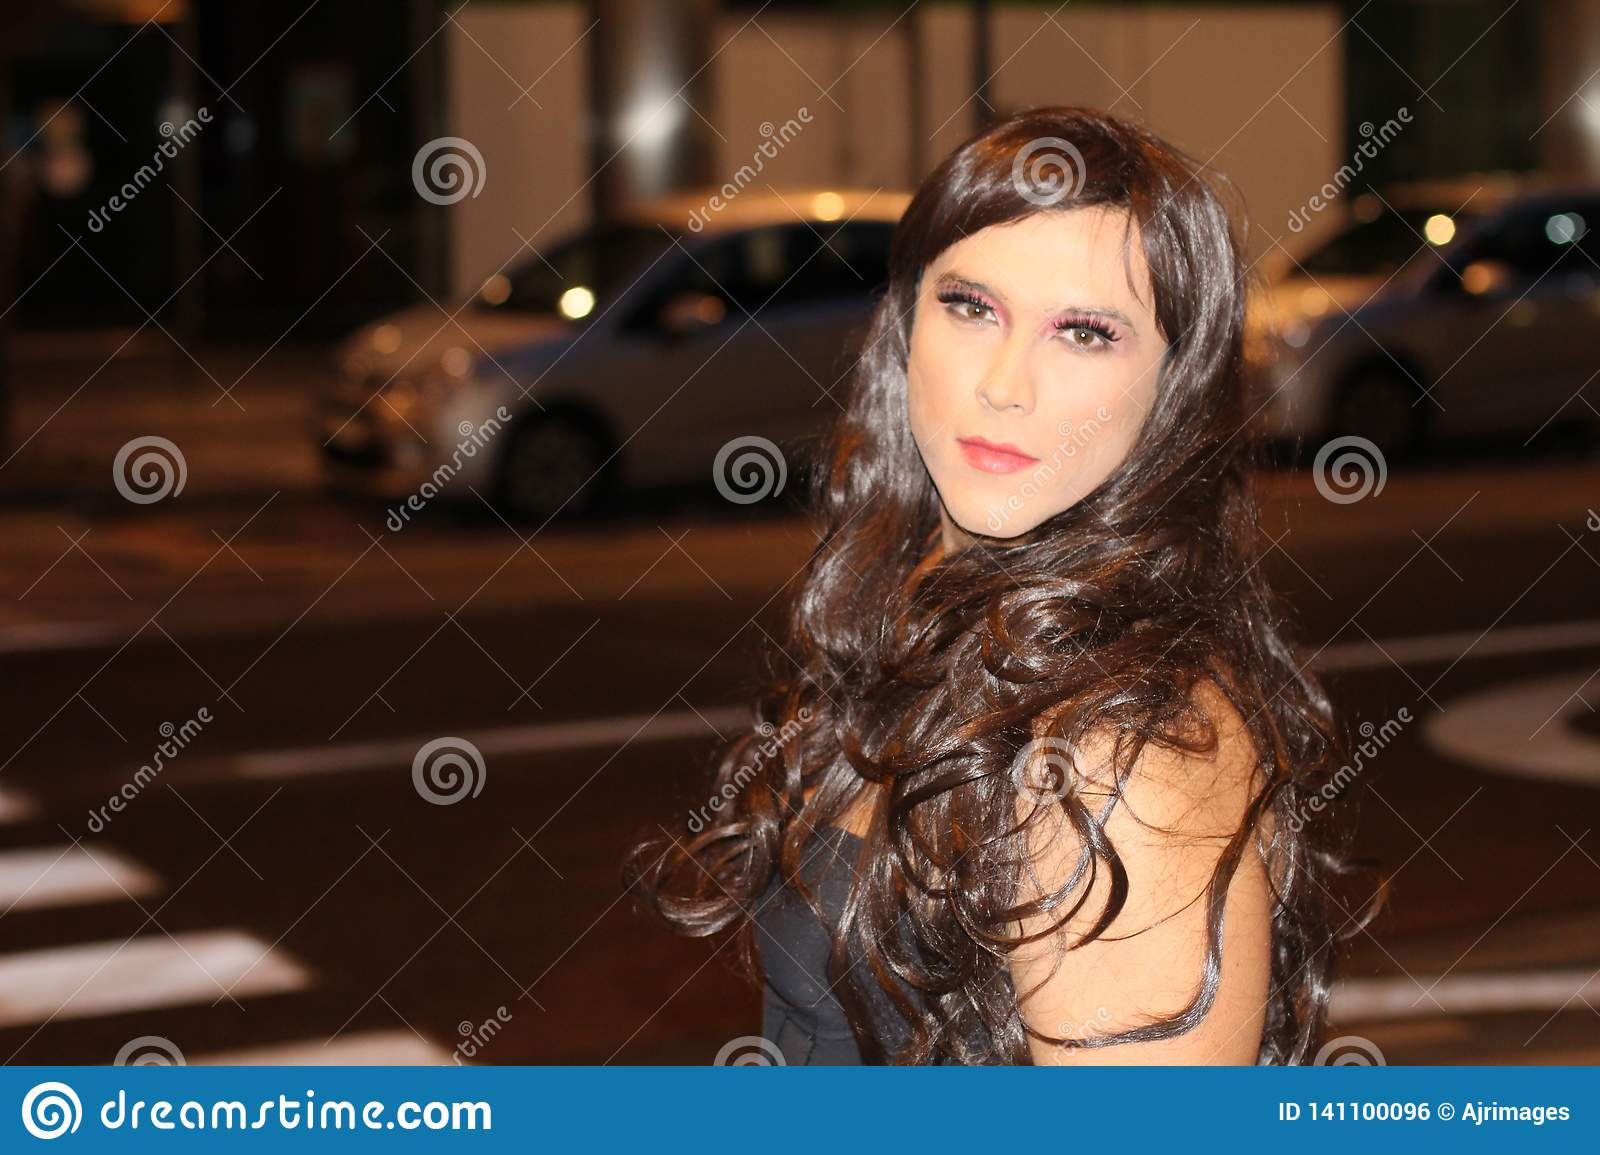 Transvestite outdoors with copy space